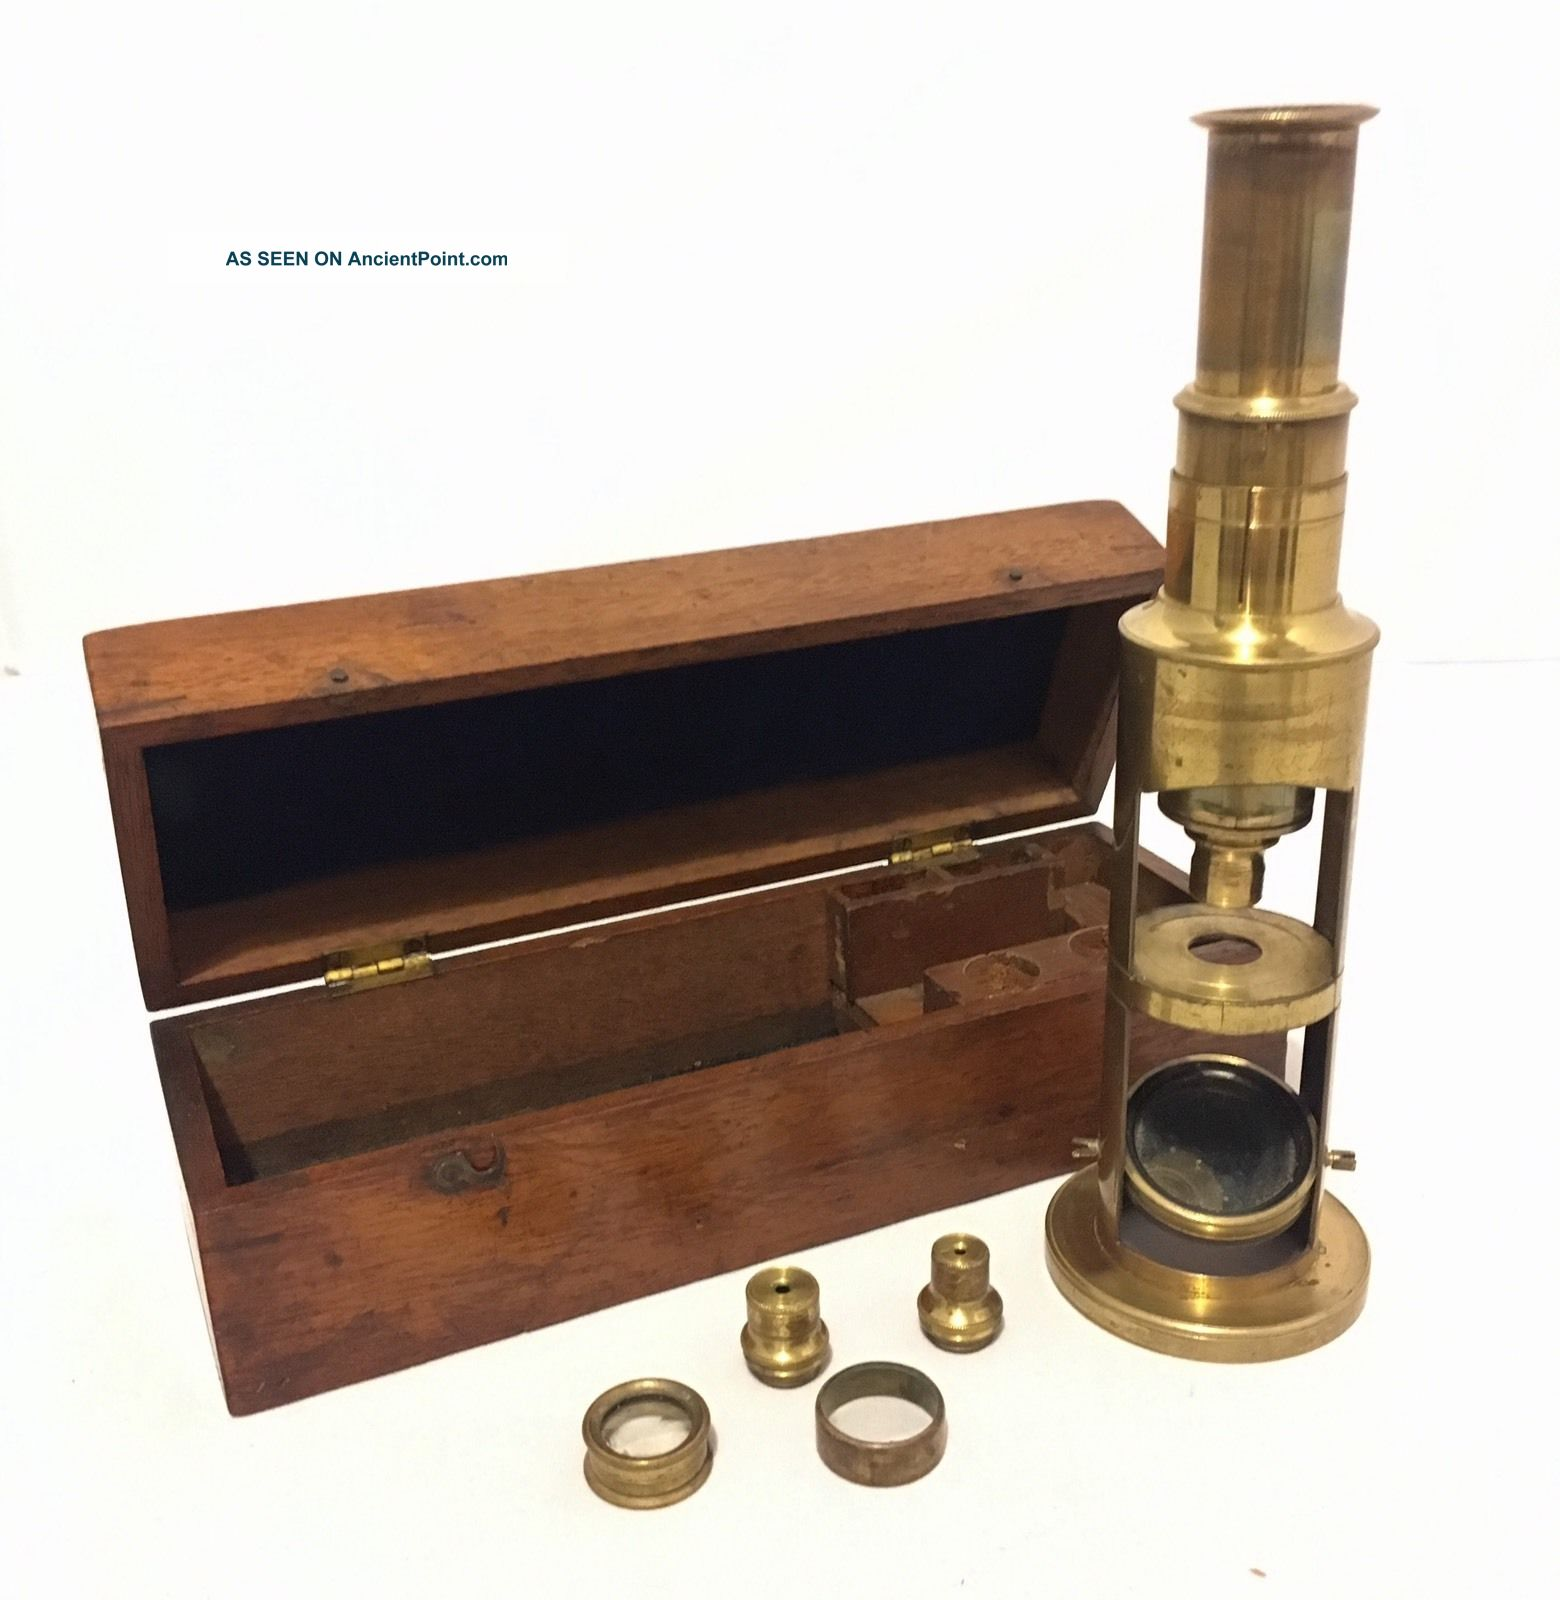 Antique 19th Century Brass Field Student Microscope With Lenses Other Antique Science Equip photo